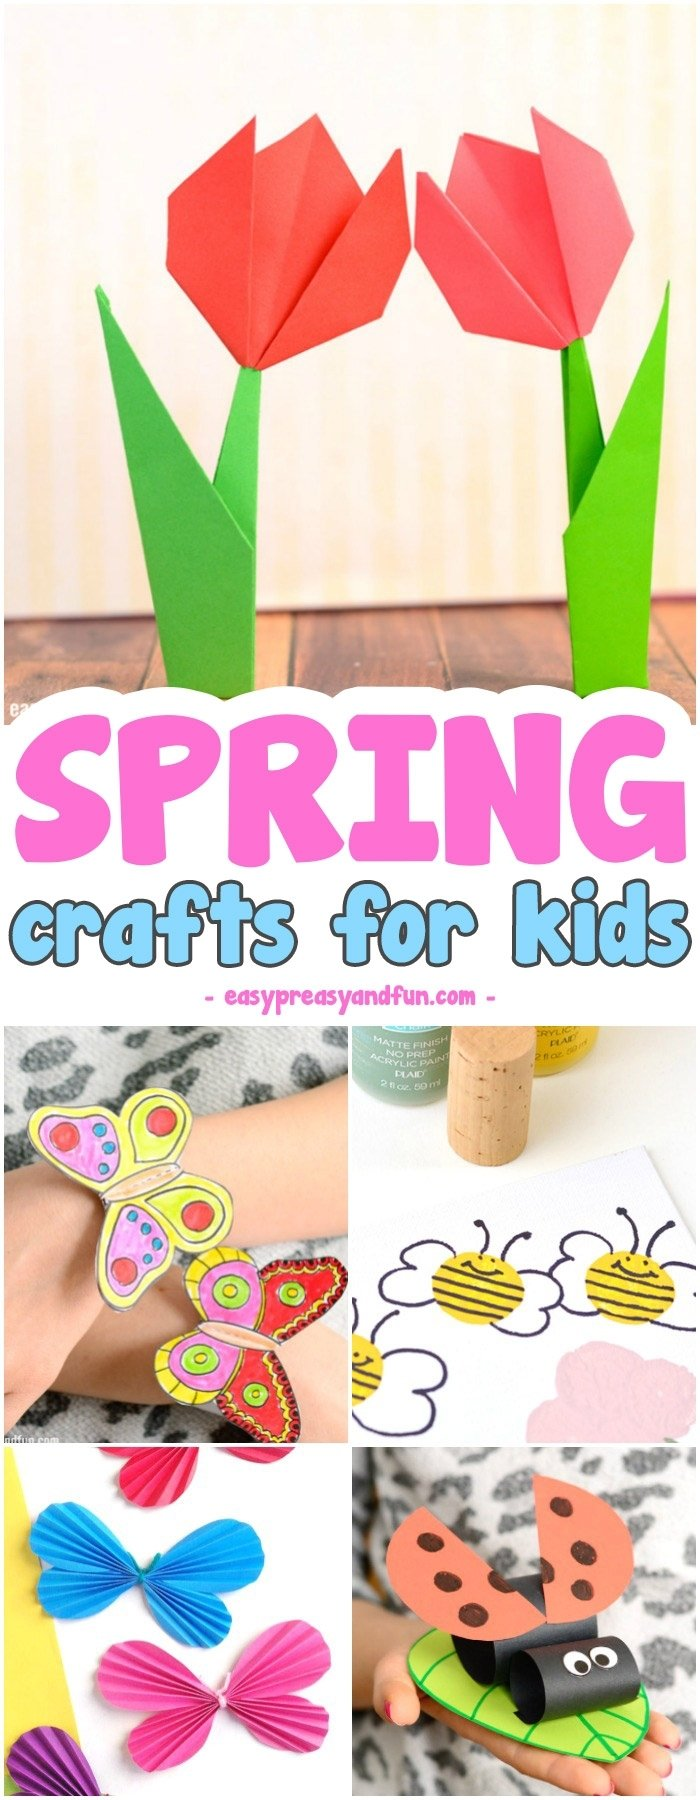 10 Most Recommended Spring Craft Ideas For Preschoolers spring crafts for kids art and craft project ideas for all ages 2 2021